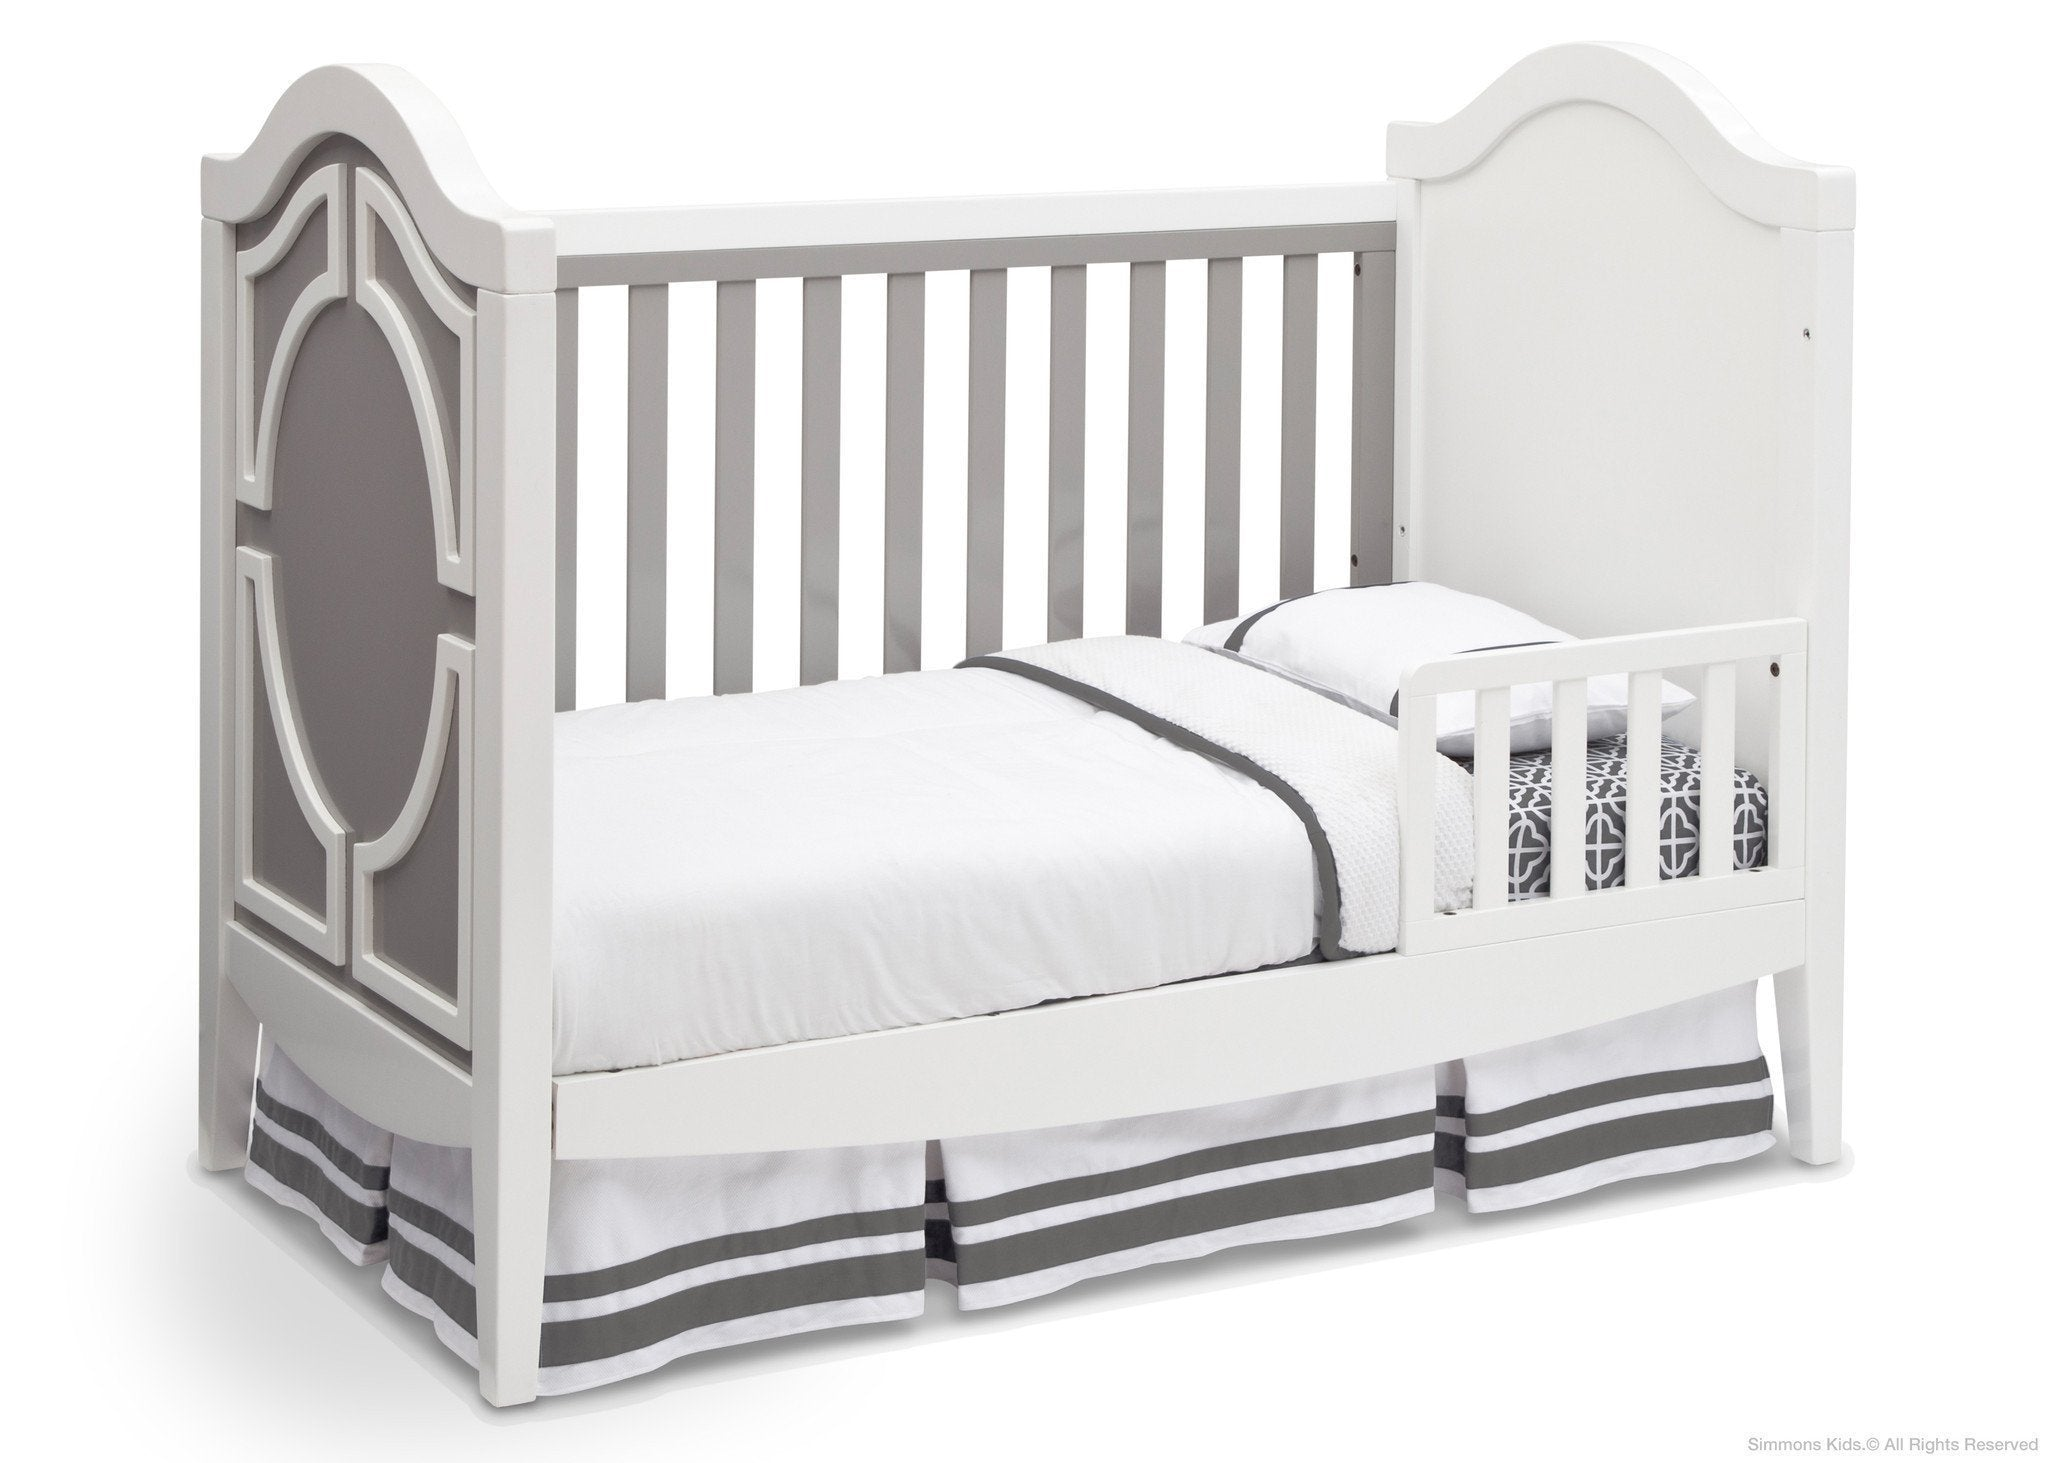 Simmons Kids Antique White/Grey (066) Hollywood 3-in-1 Crib, Toddler Bed Conversion a4a